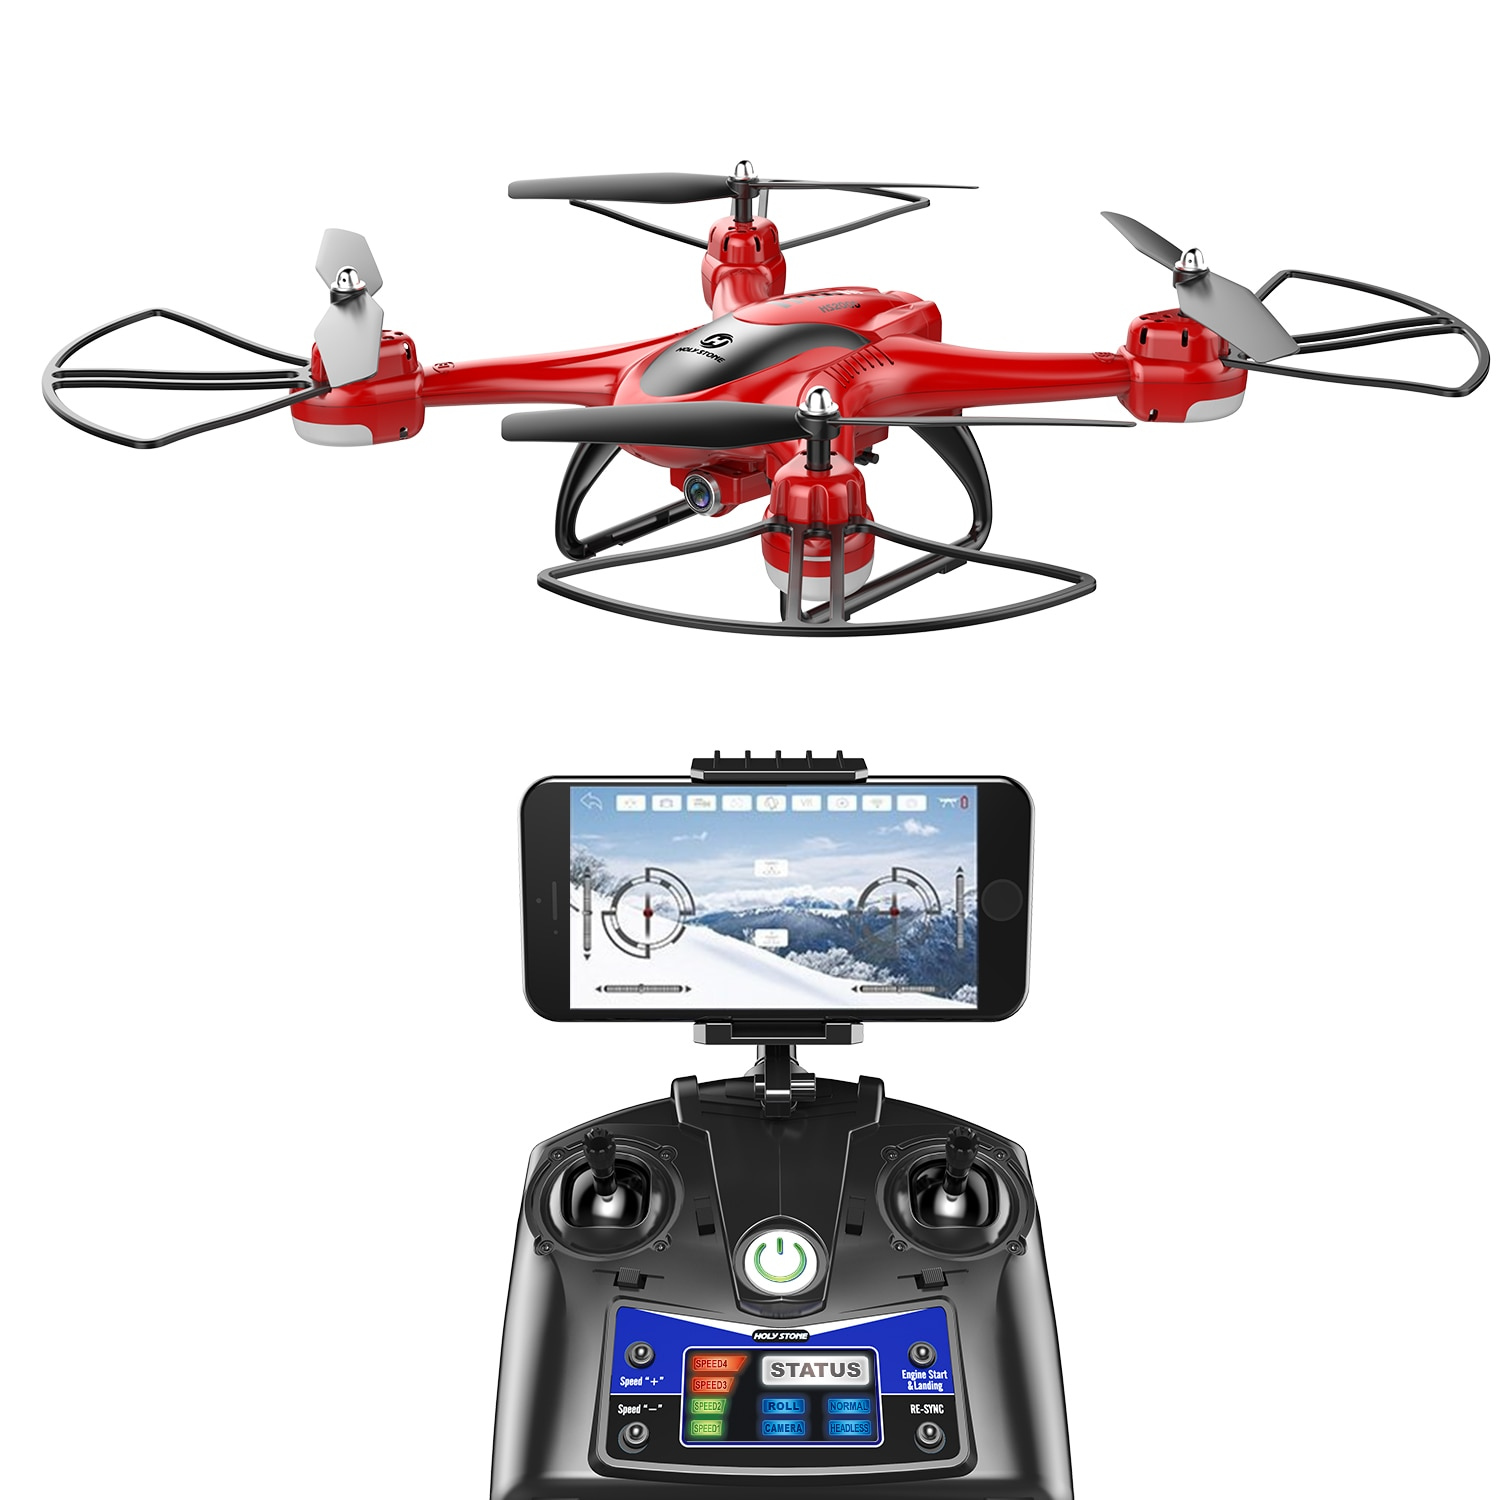 2 Batteries Holy Stone HS200D FPV Drone with 720P HD Live Video Wifi Camera 2.4GHz 4CH 6-Axis Black Red color enlarge